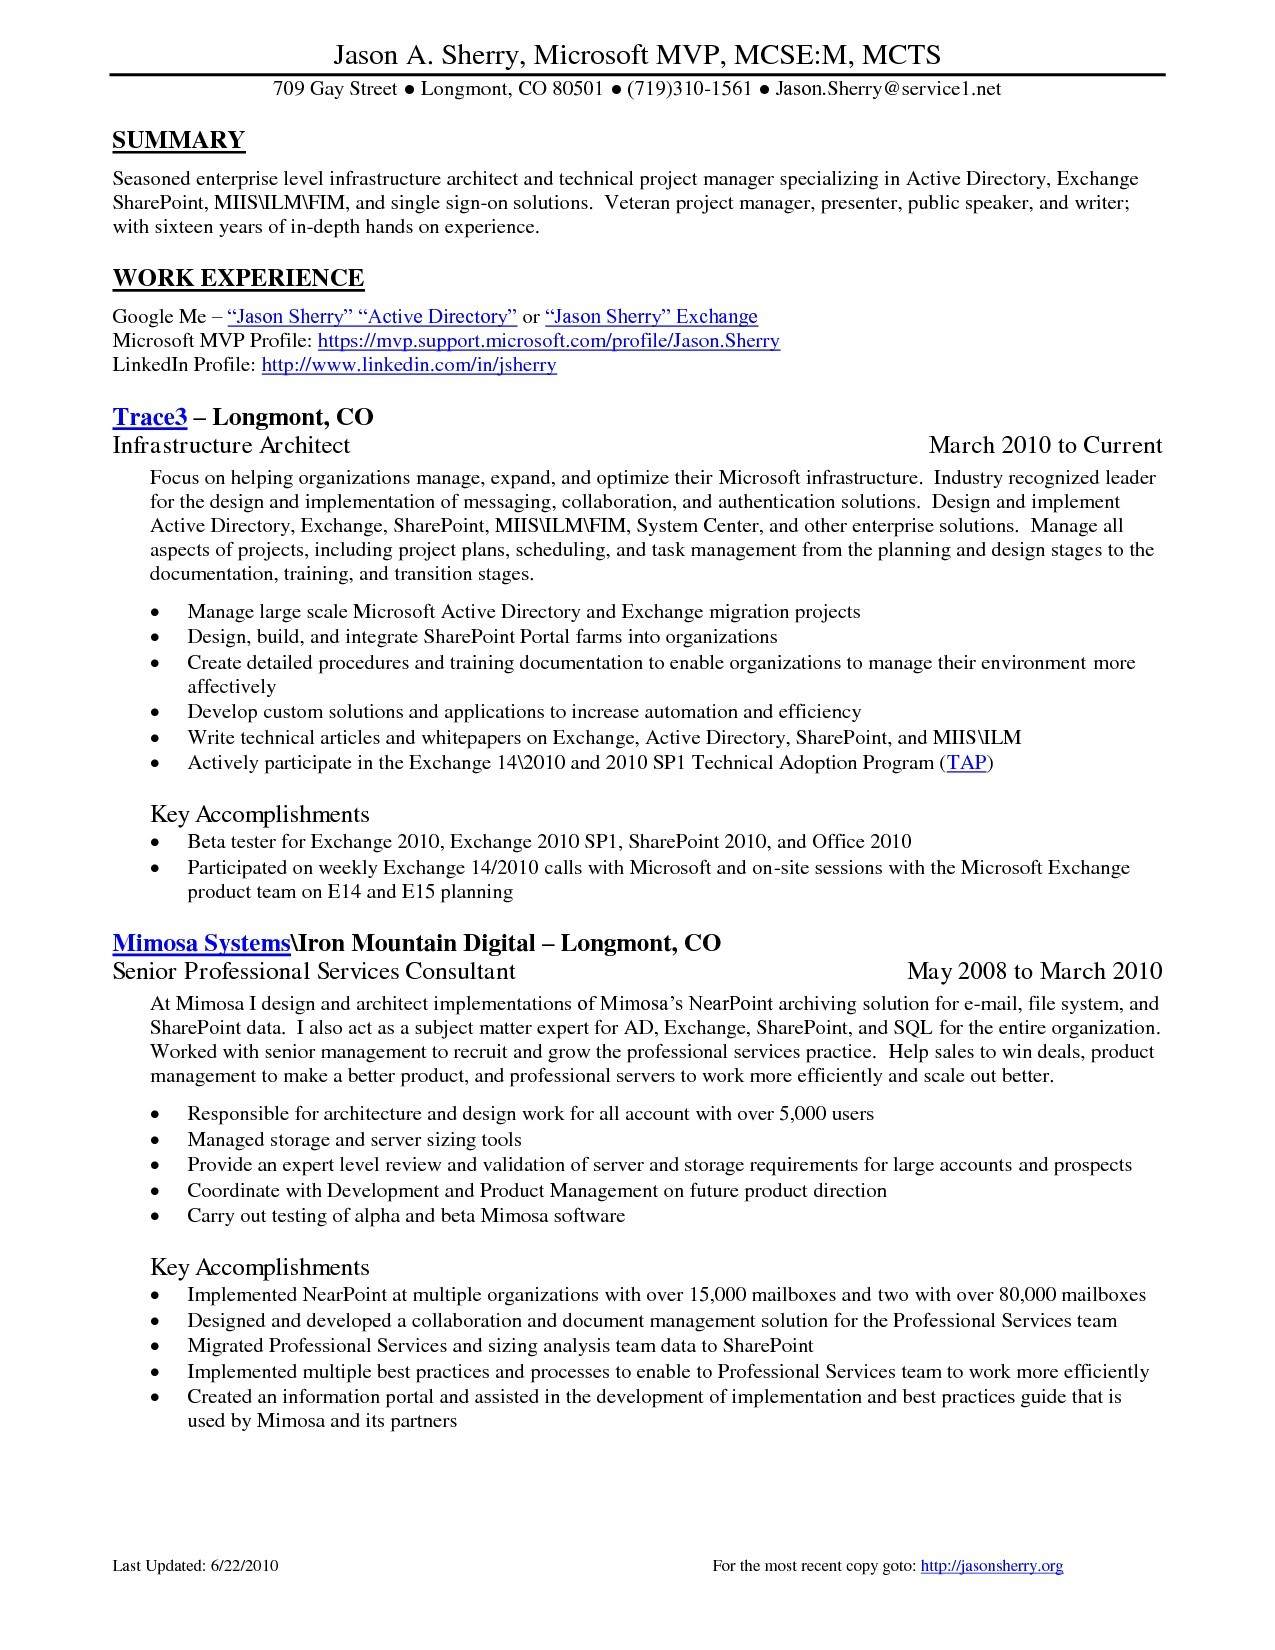 Public Speaker Resume Sample - 30 Beautiful Public Speaking Resume